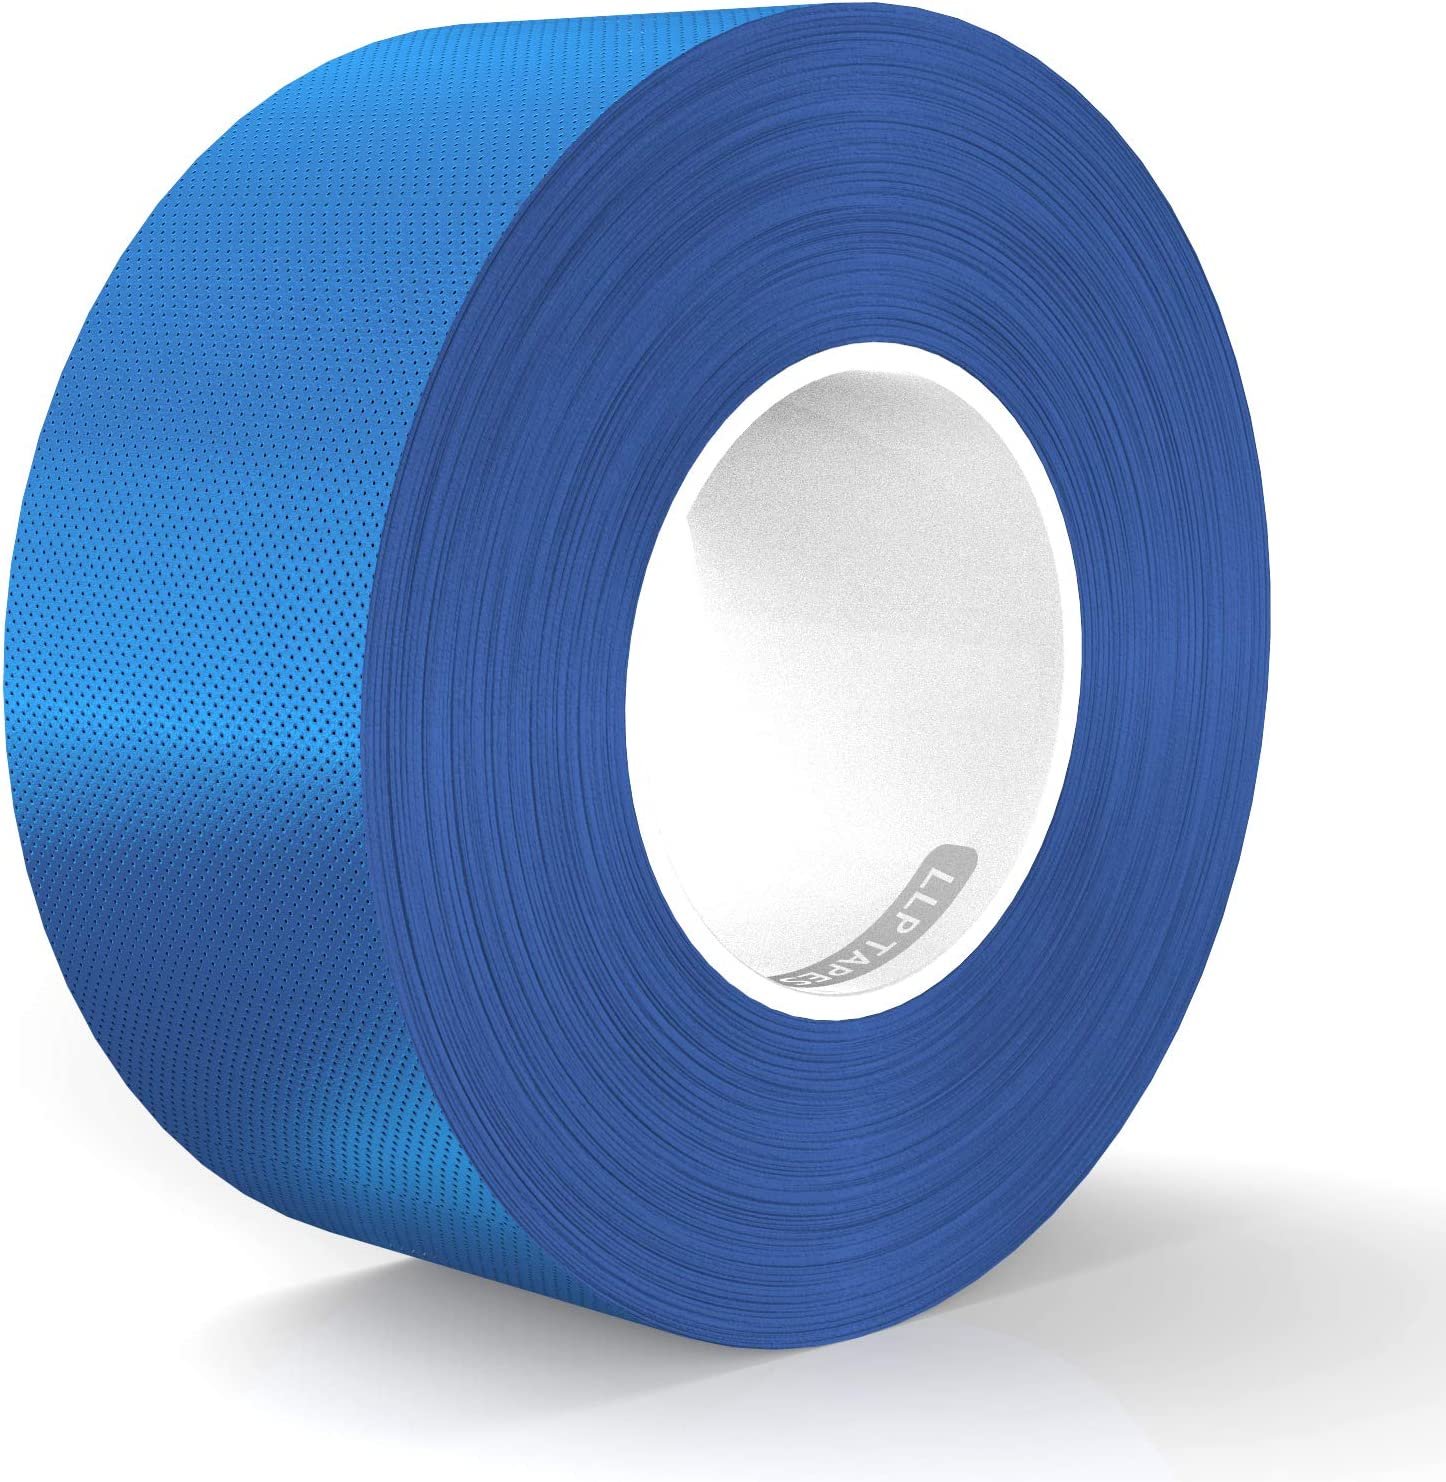 LLPT Duct Tape Premium Grade 2.36 Inches x 108 Feet x 11 Mil Residue Free Strong Waterproof Adhesive Color Black